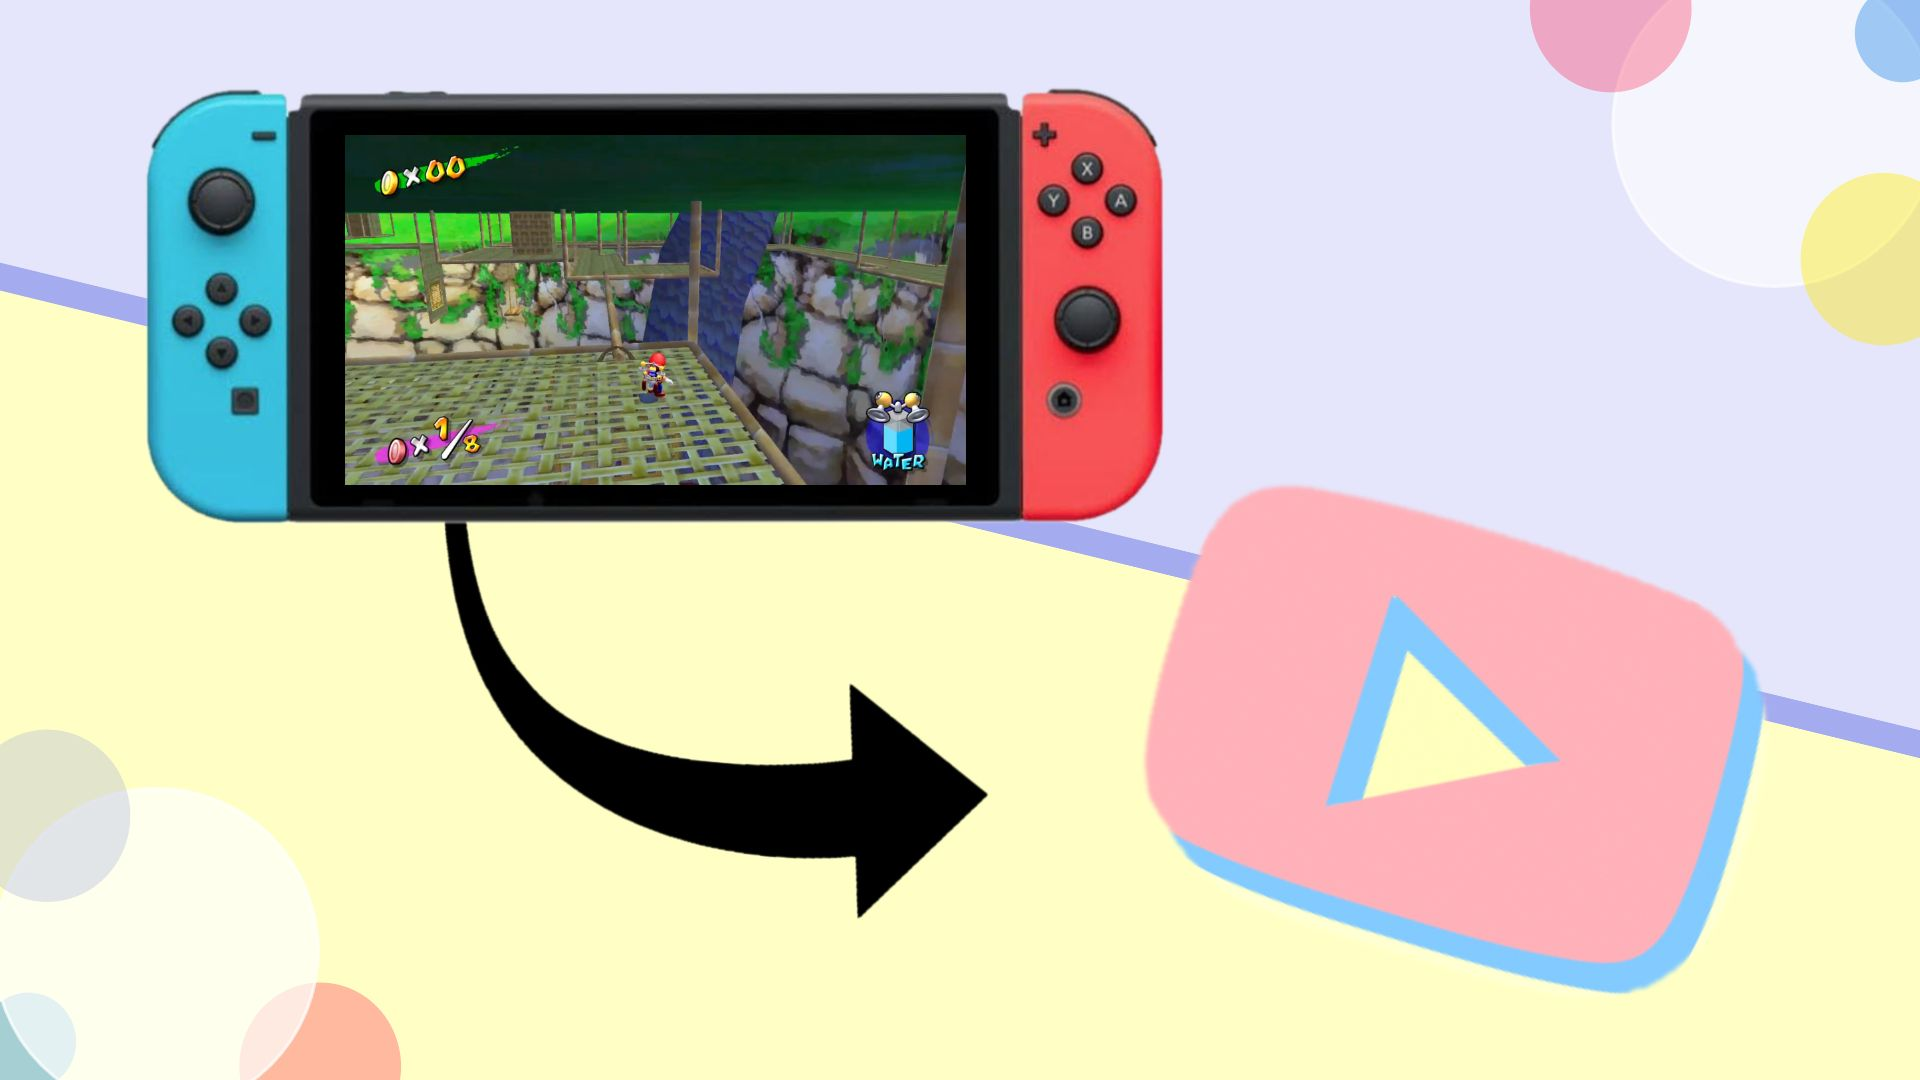 How to Share Nintendo Switch Video Recordings on YouTube (without capture card)